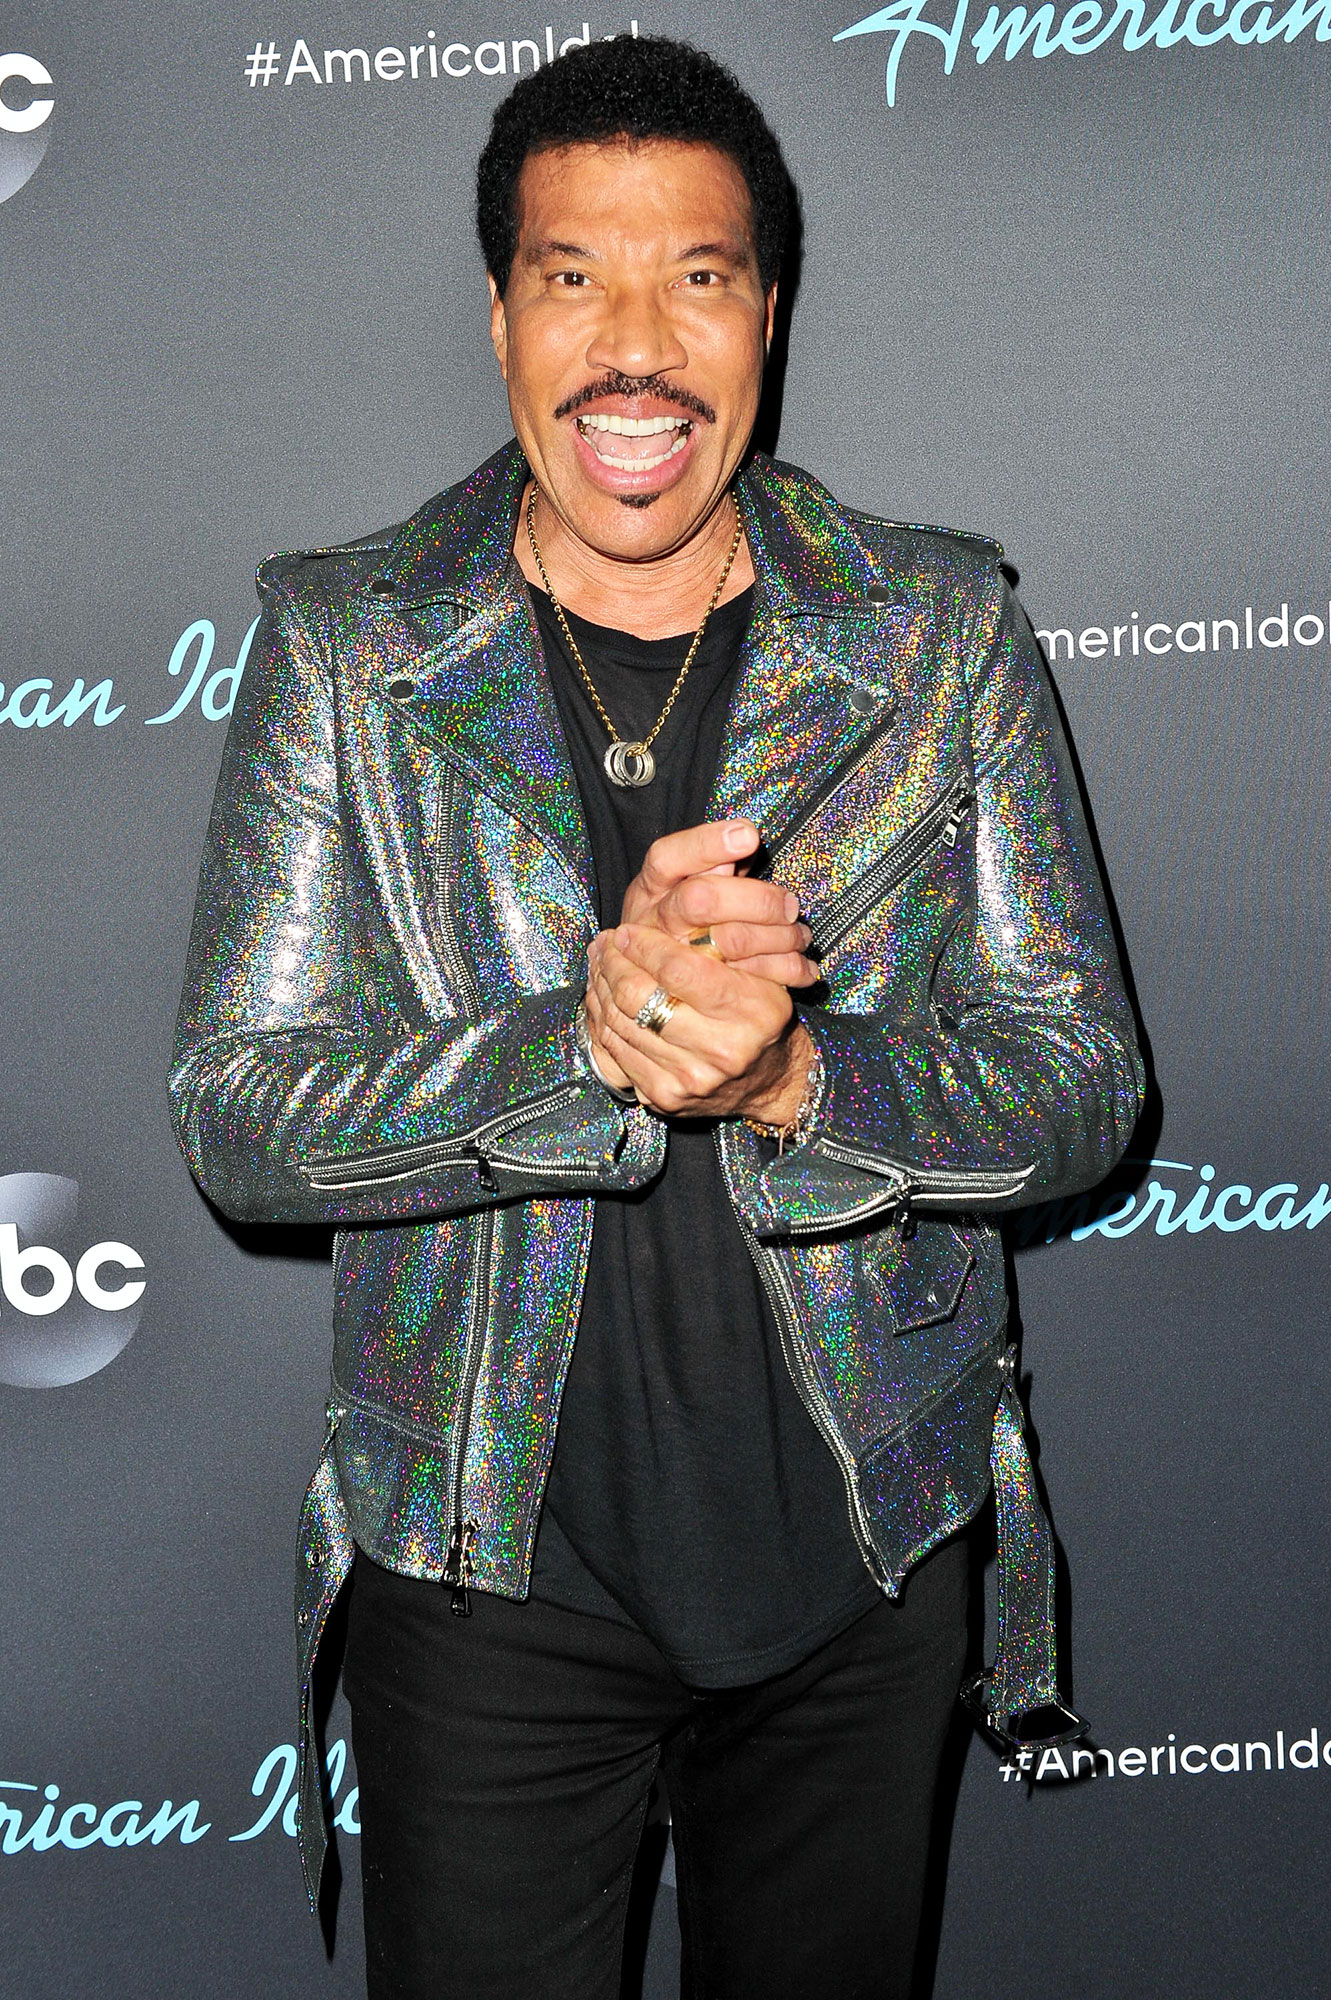 """Brenda Harvey Richie, Lionel Richie, and Nicole Richie - Lionel Richie poses for a photo after ABC's """"American Idol"""" live show on April 28, 2019 in Los Angeles, California."""